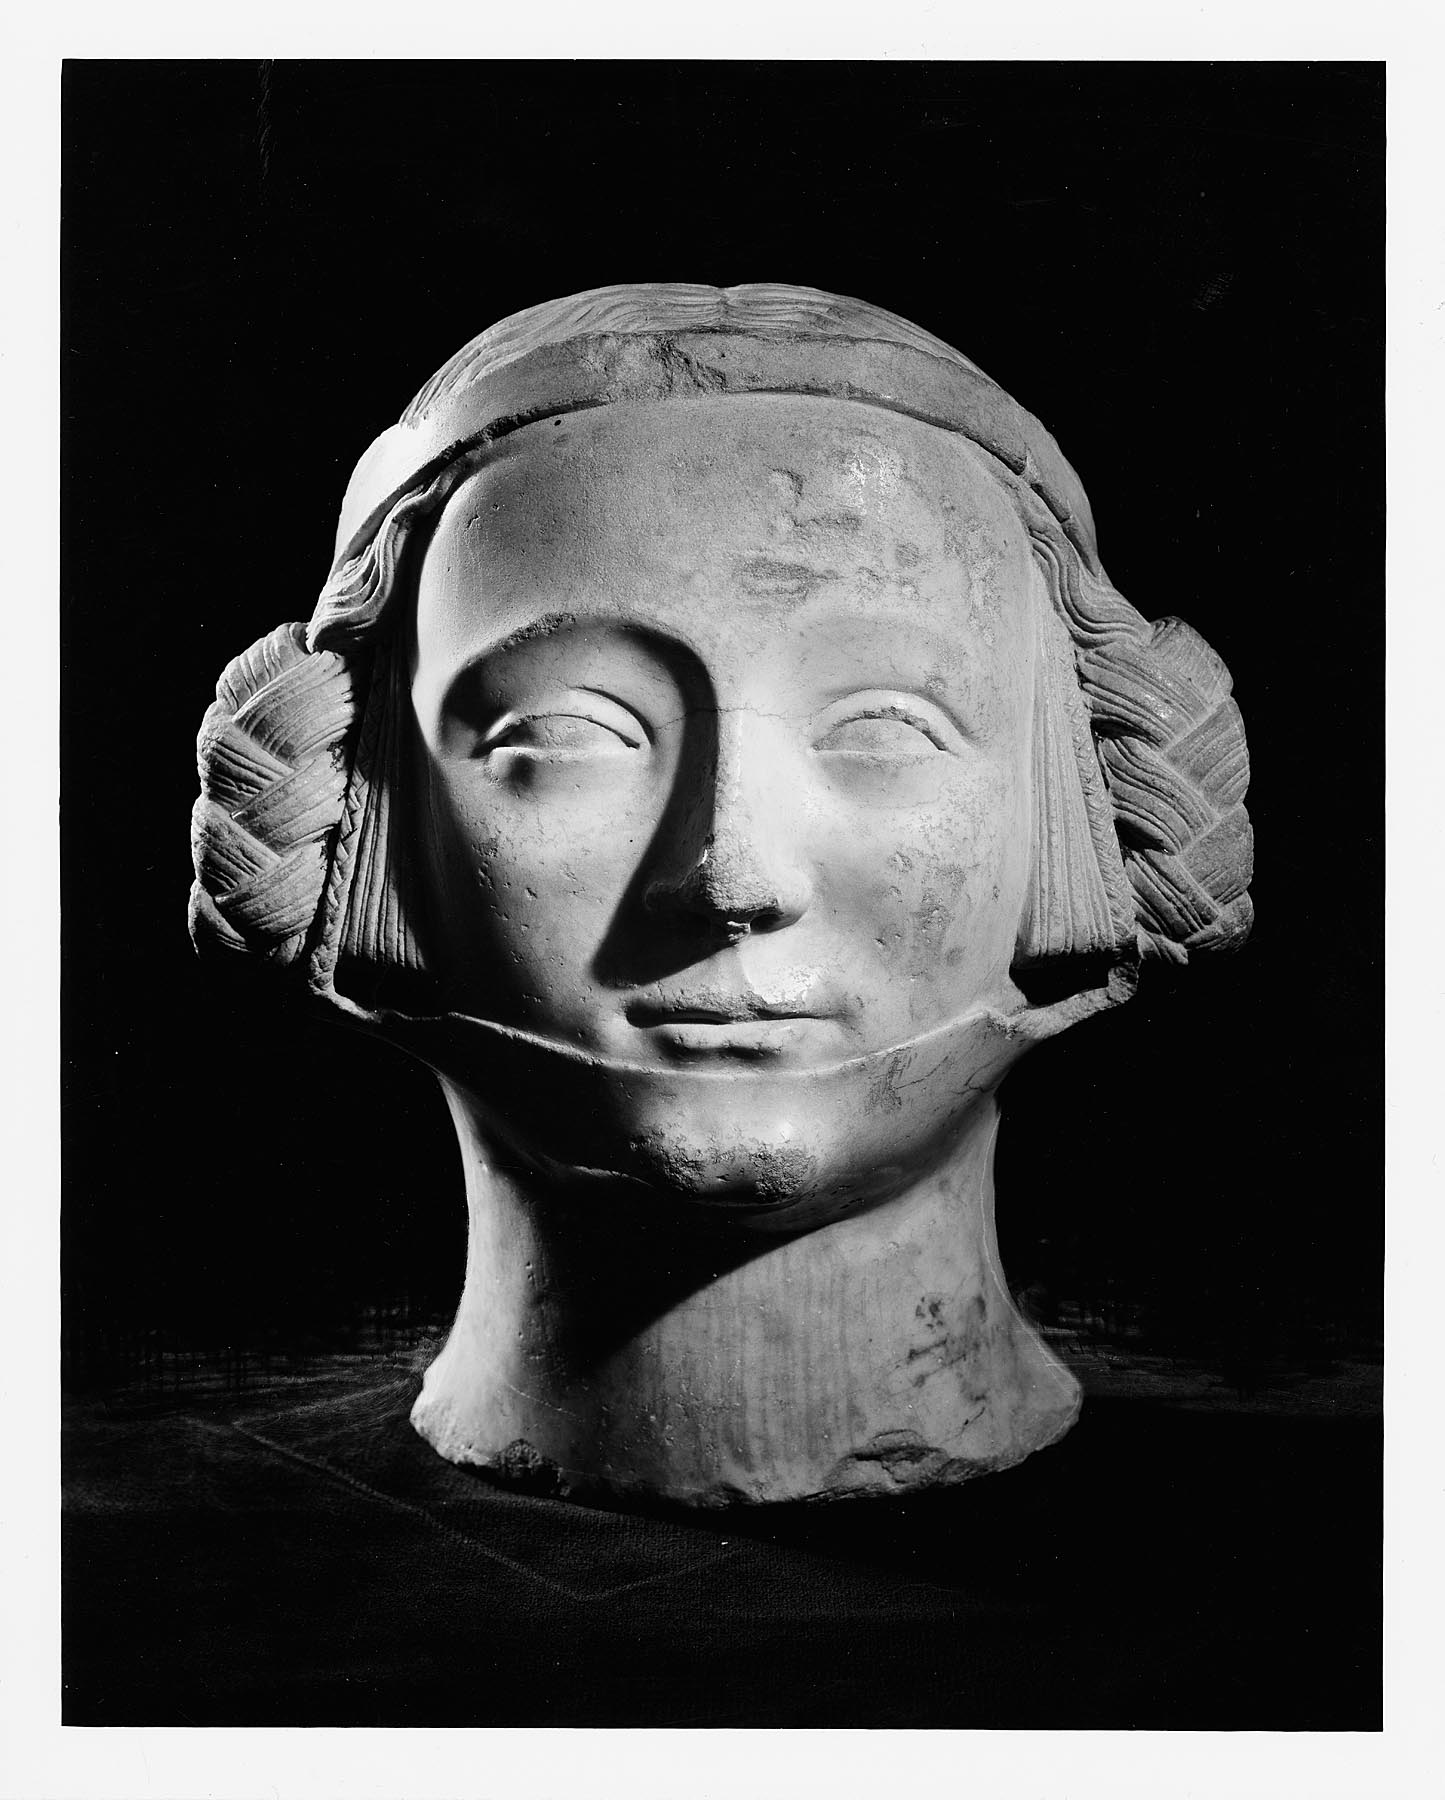 French, Head of a Noblewoman, 14th century. Marble; H: 11 3/4 in. Milwaukee Art Museum, Gift of The William Randolph Hearst Foundation through the Milwaukee Sentinel M1958.67. Photo by P. Richard Eells.